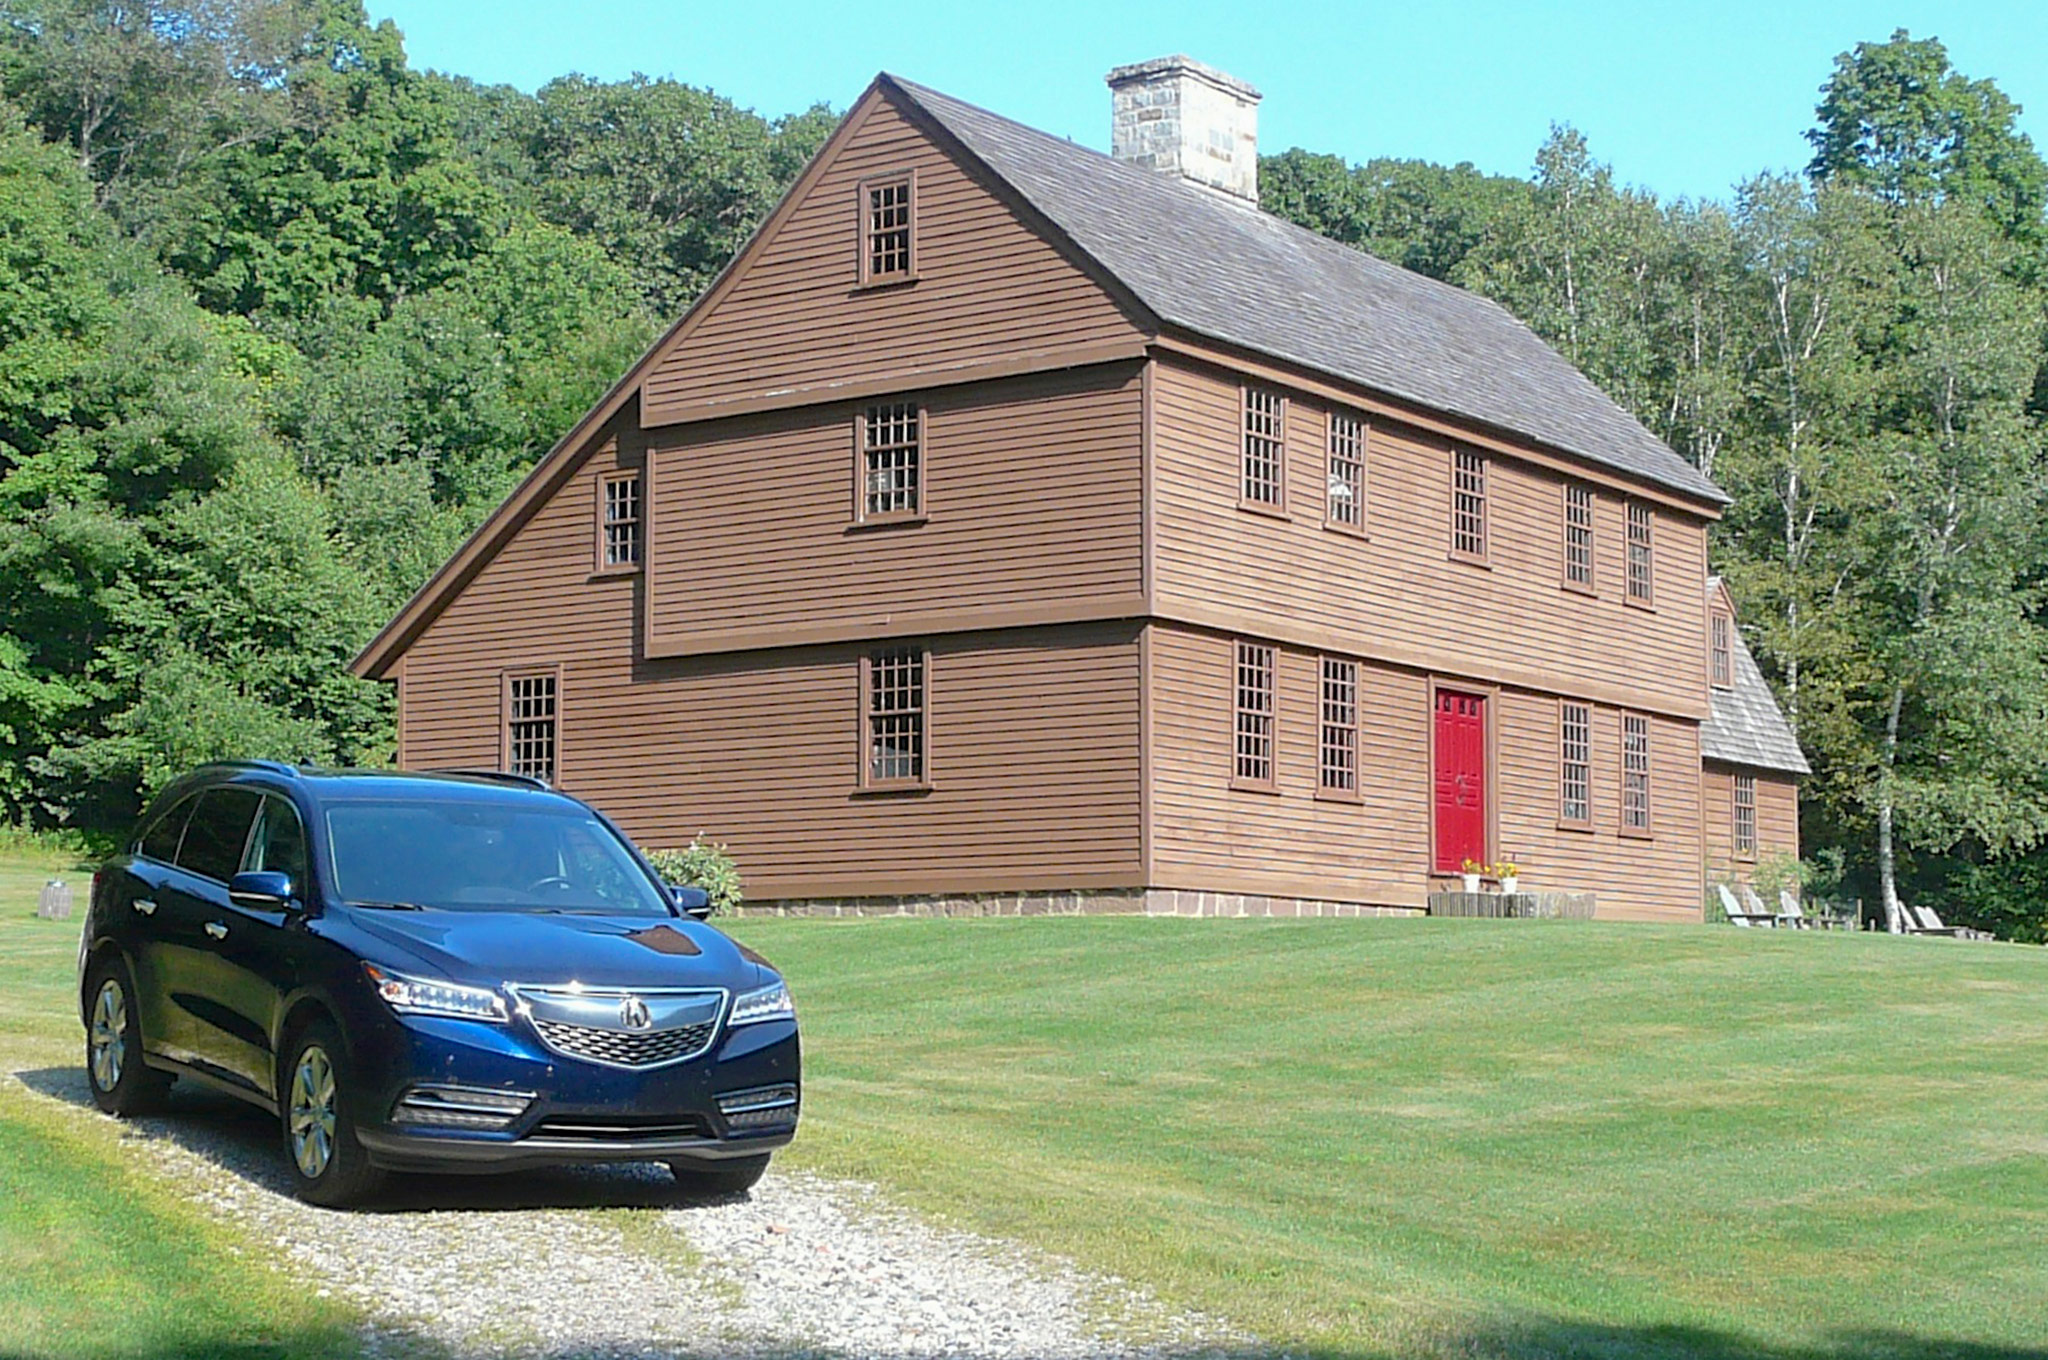 2014 Acura MDX With Brown House